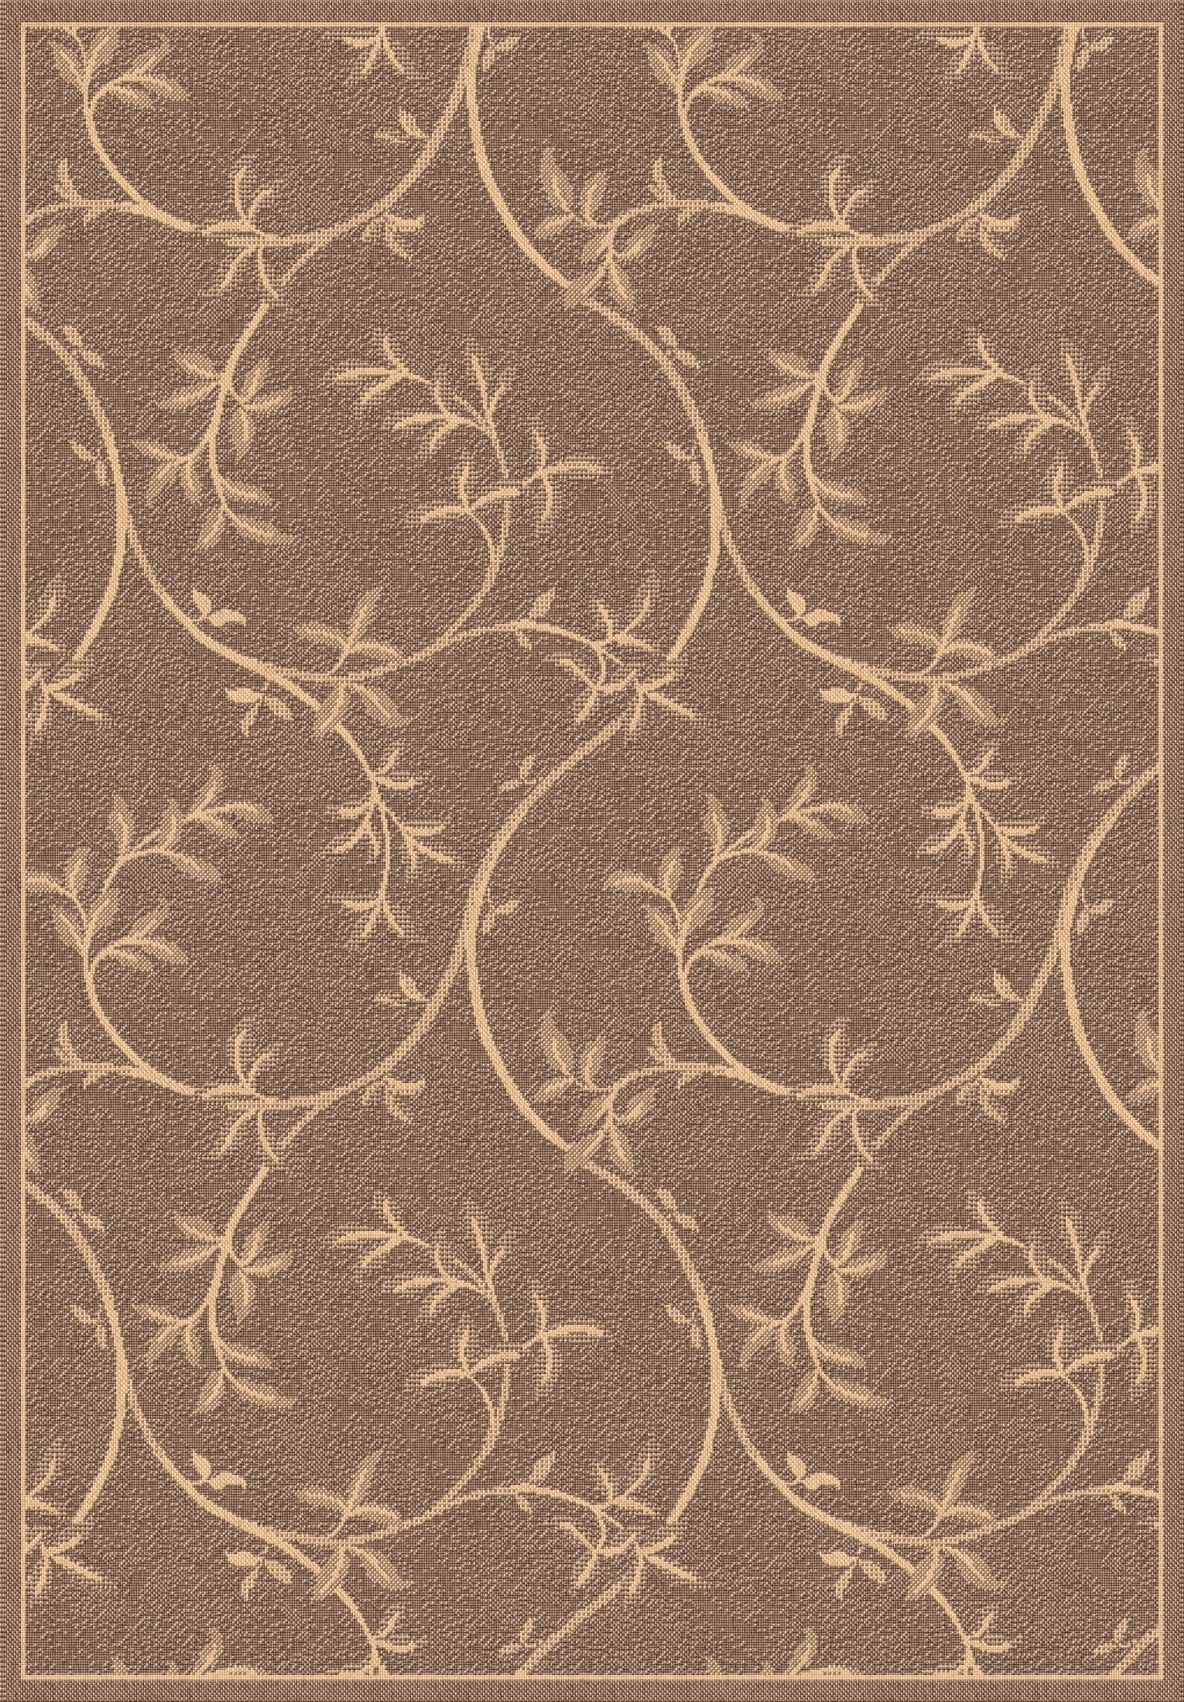 Dynamic Rugs Piazza Floral Brown 2585 Area Rug